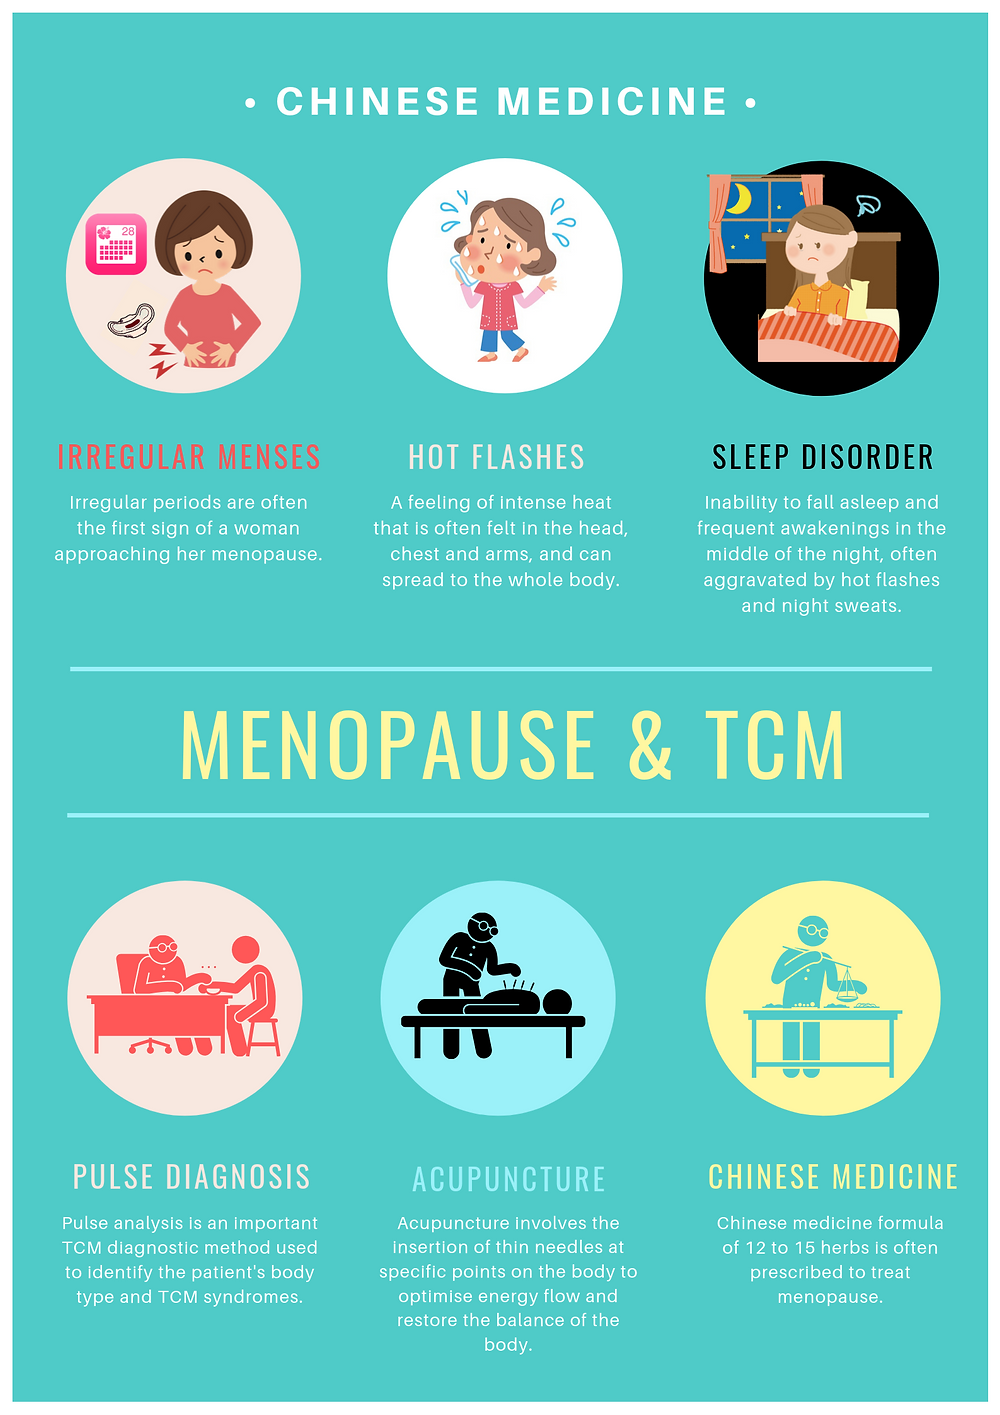 menopause symptoms & physical changes